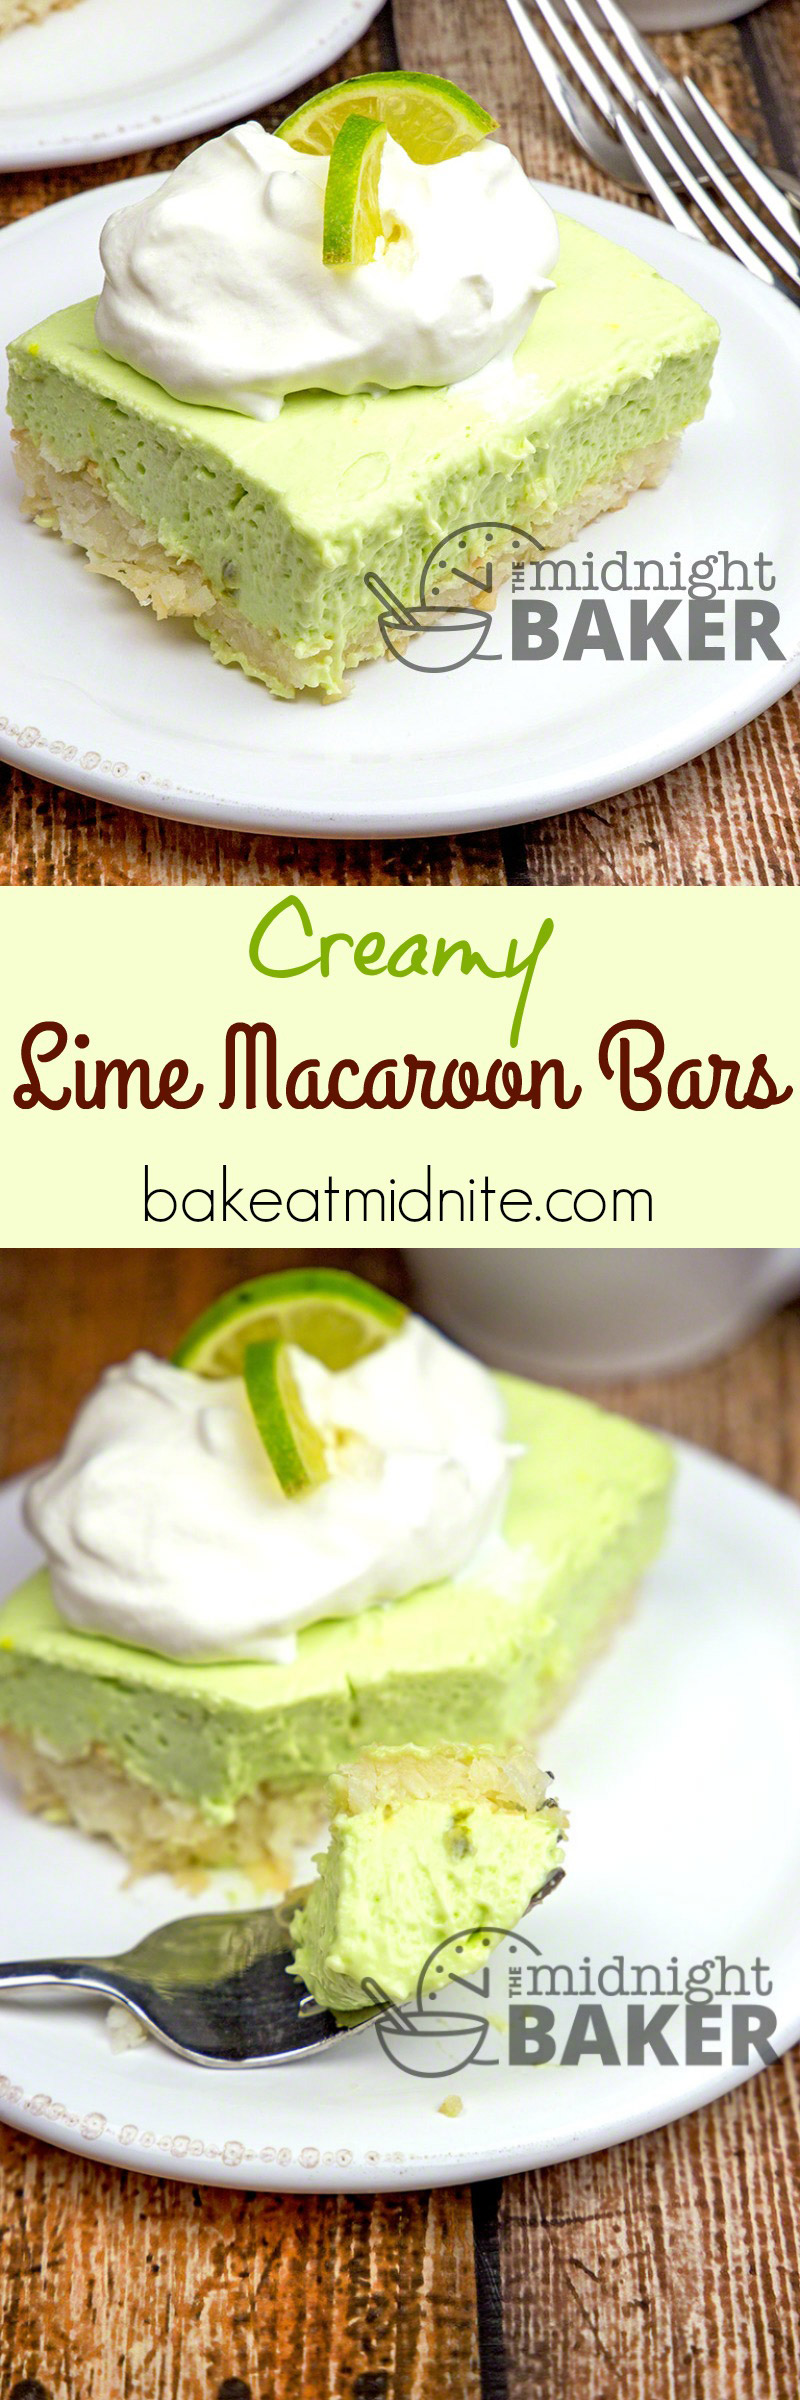 Slightly tart creamy lime filling sits on top of a coconut macaroon crust. Very refreshing dessert that's different!